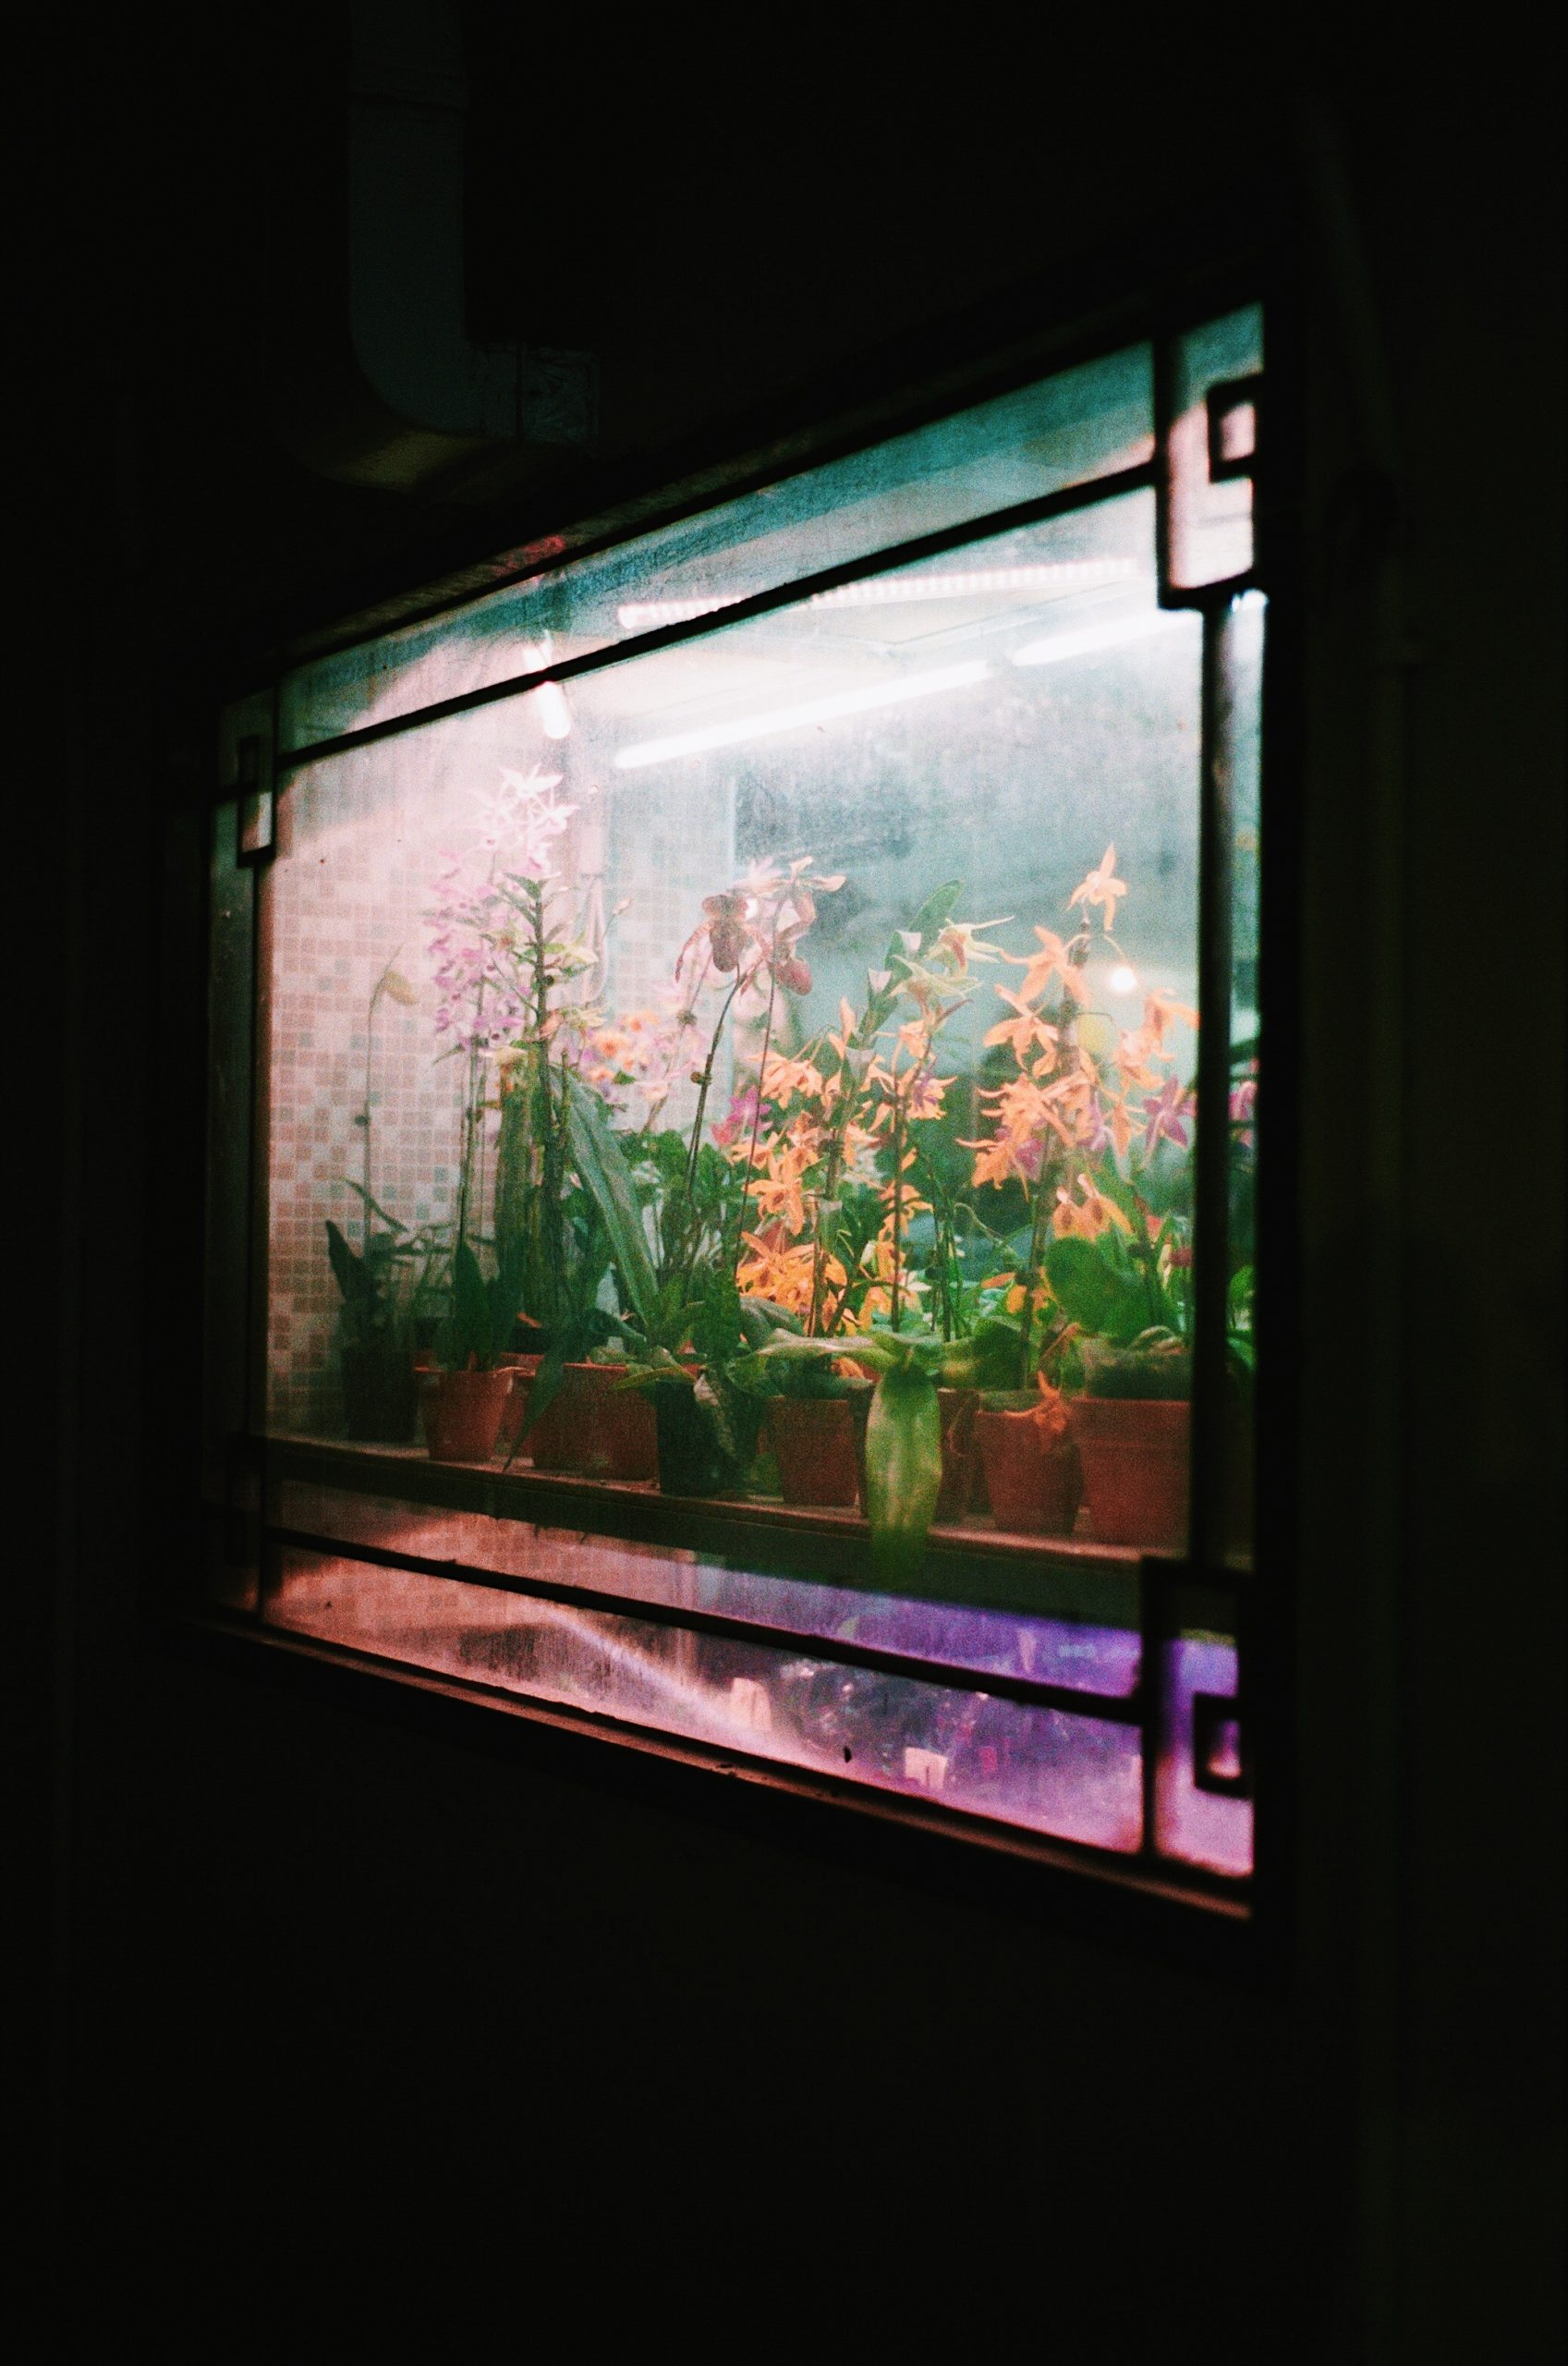 Color travel photography by Pia Riverola, flowers, window, Hong Kong